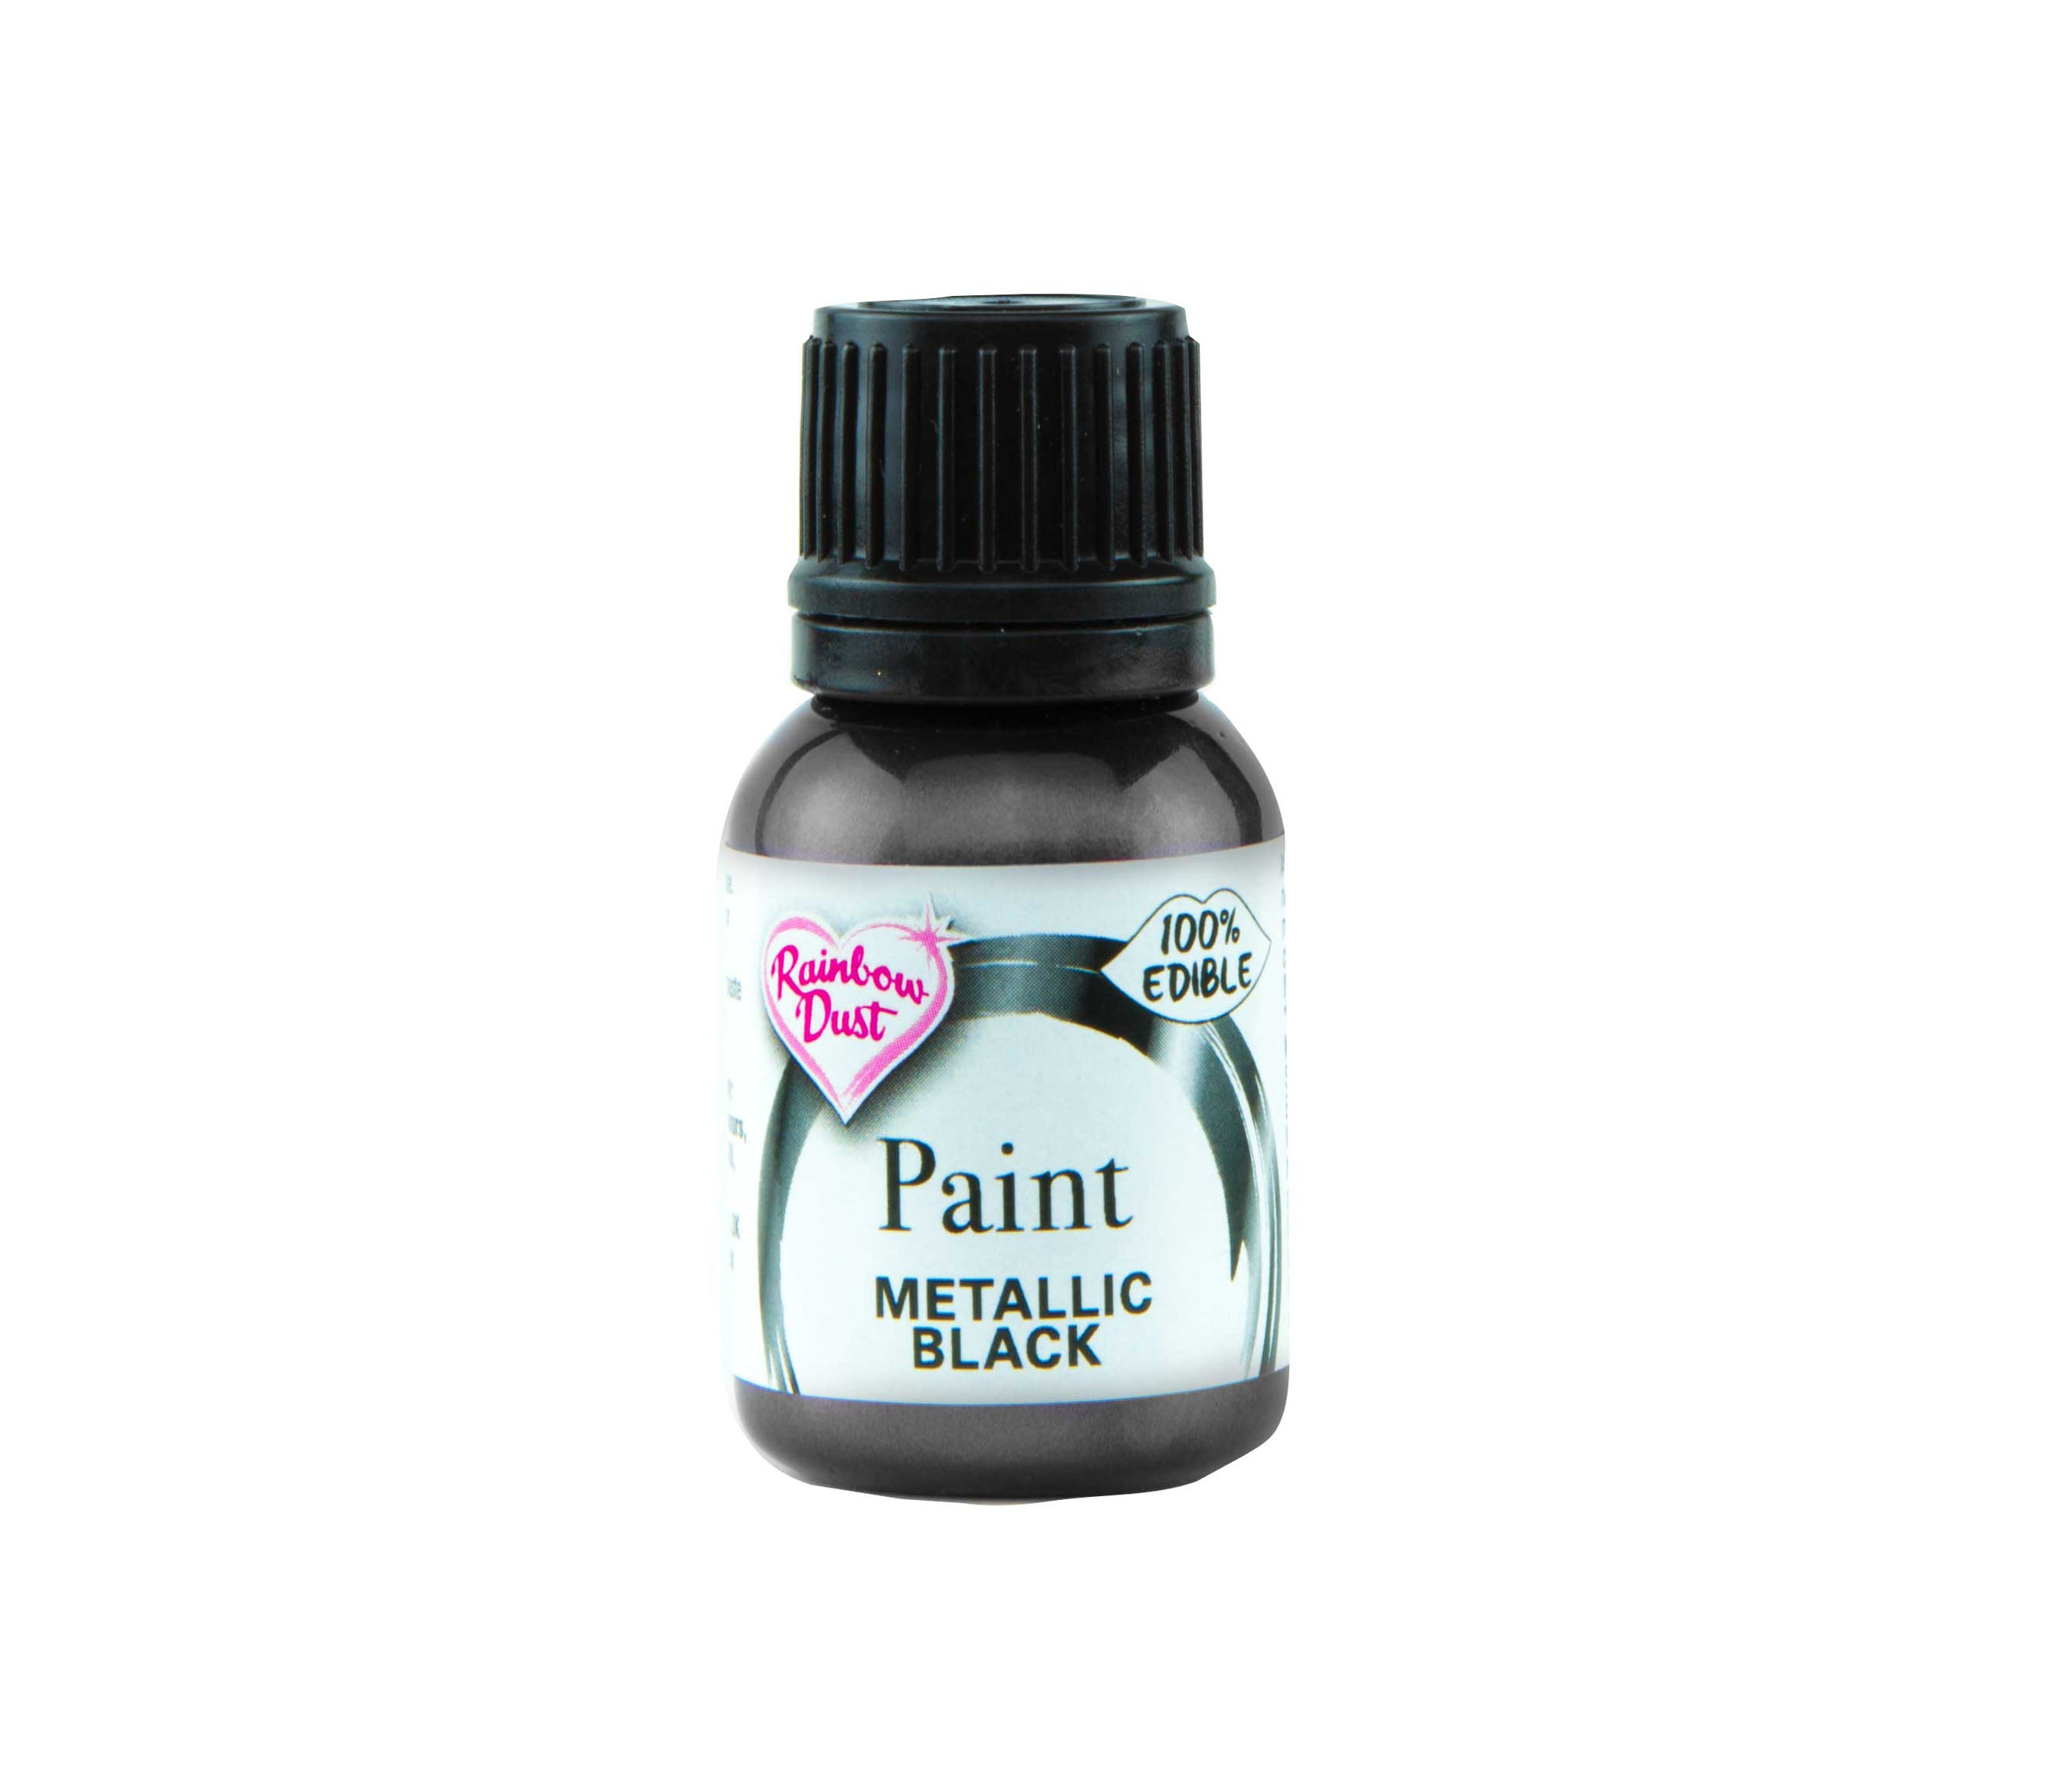 Edible Paints Metallic Black 25g